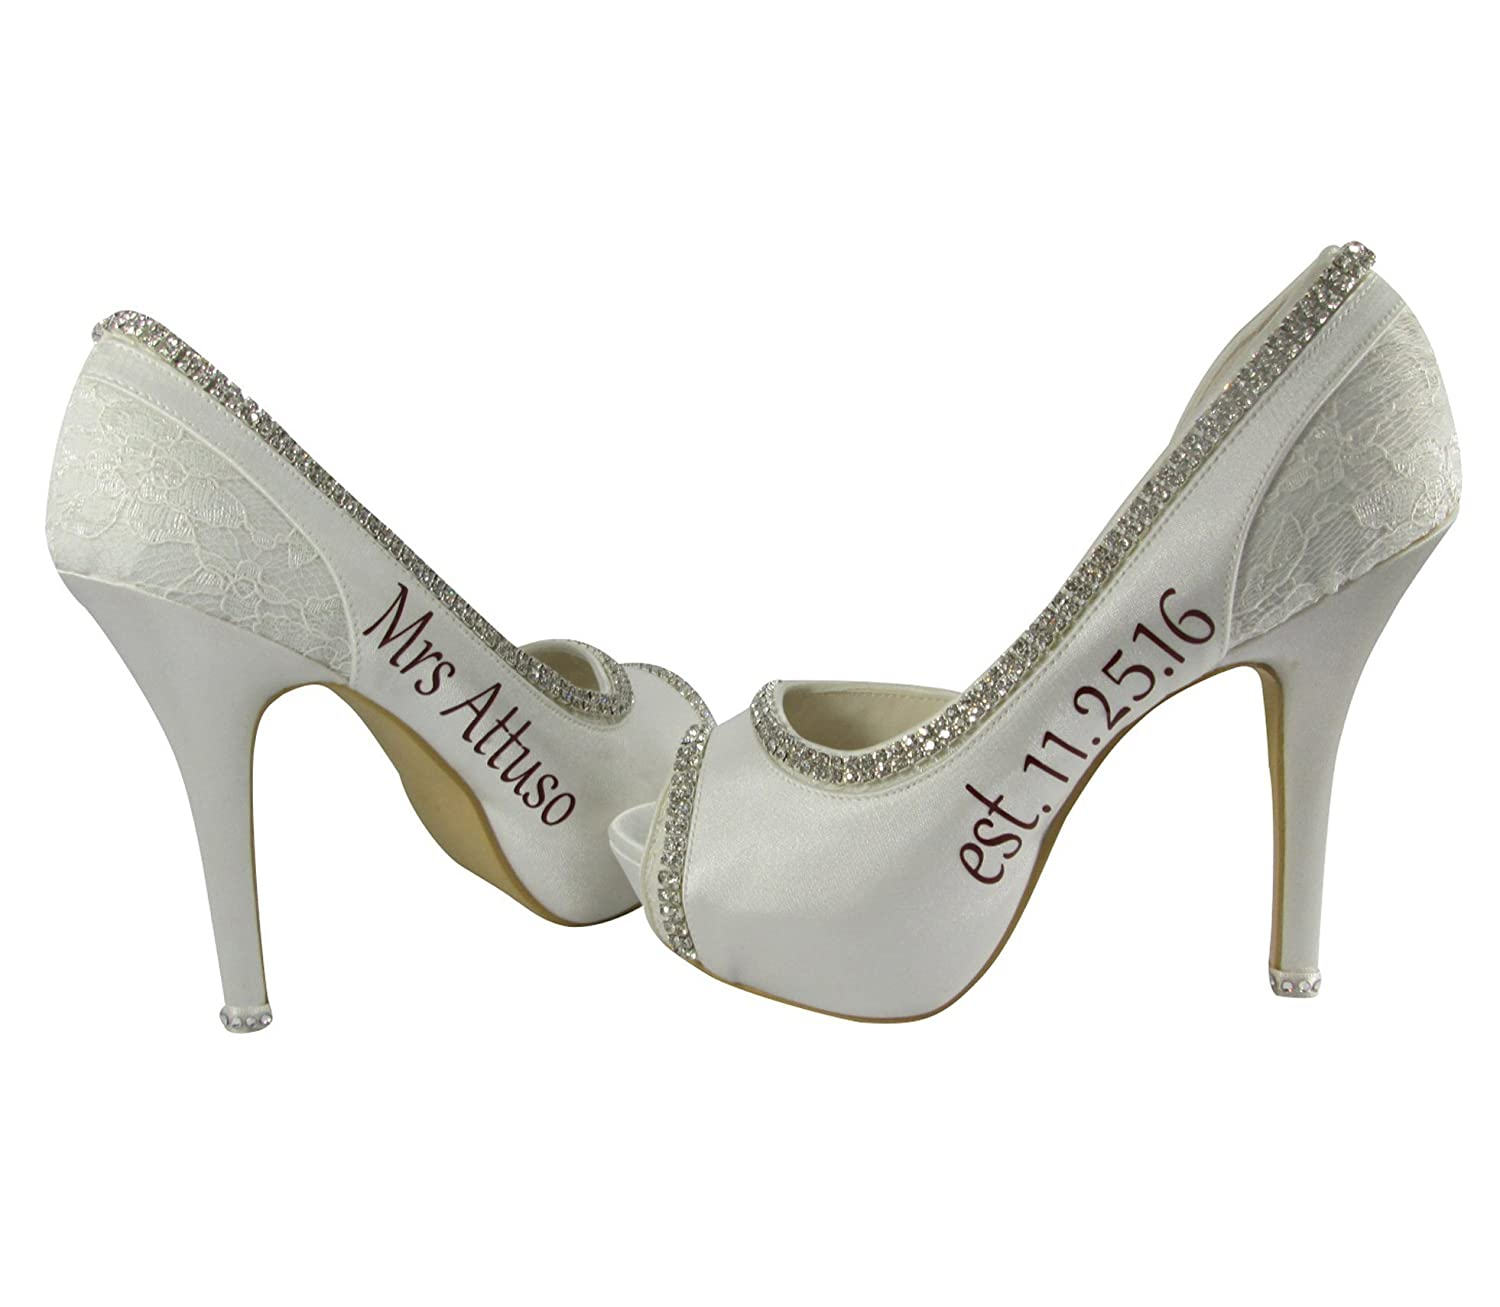 Lace & Satin Bridal Wedding Heels in 2 inch, 3.5 or 4.5 inch and Date